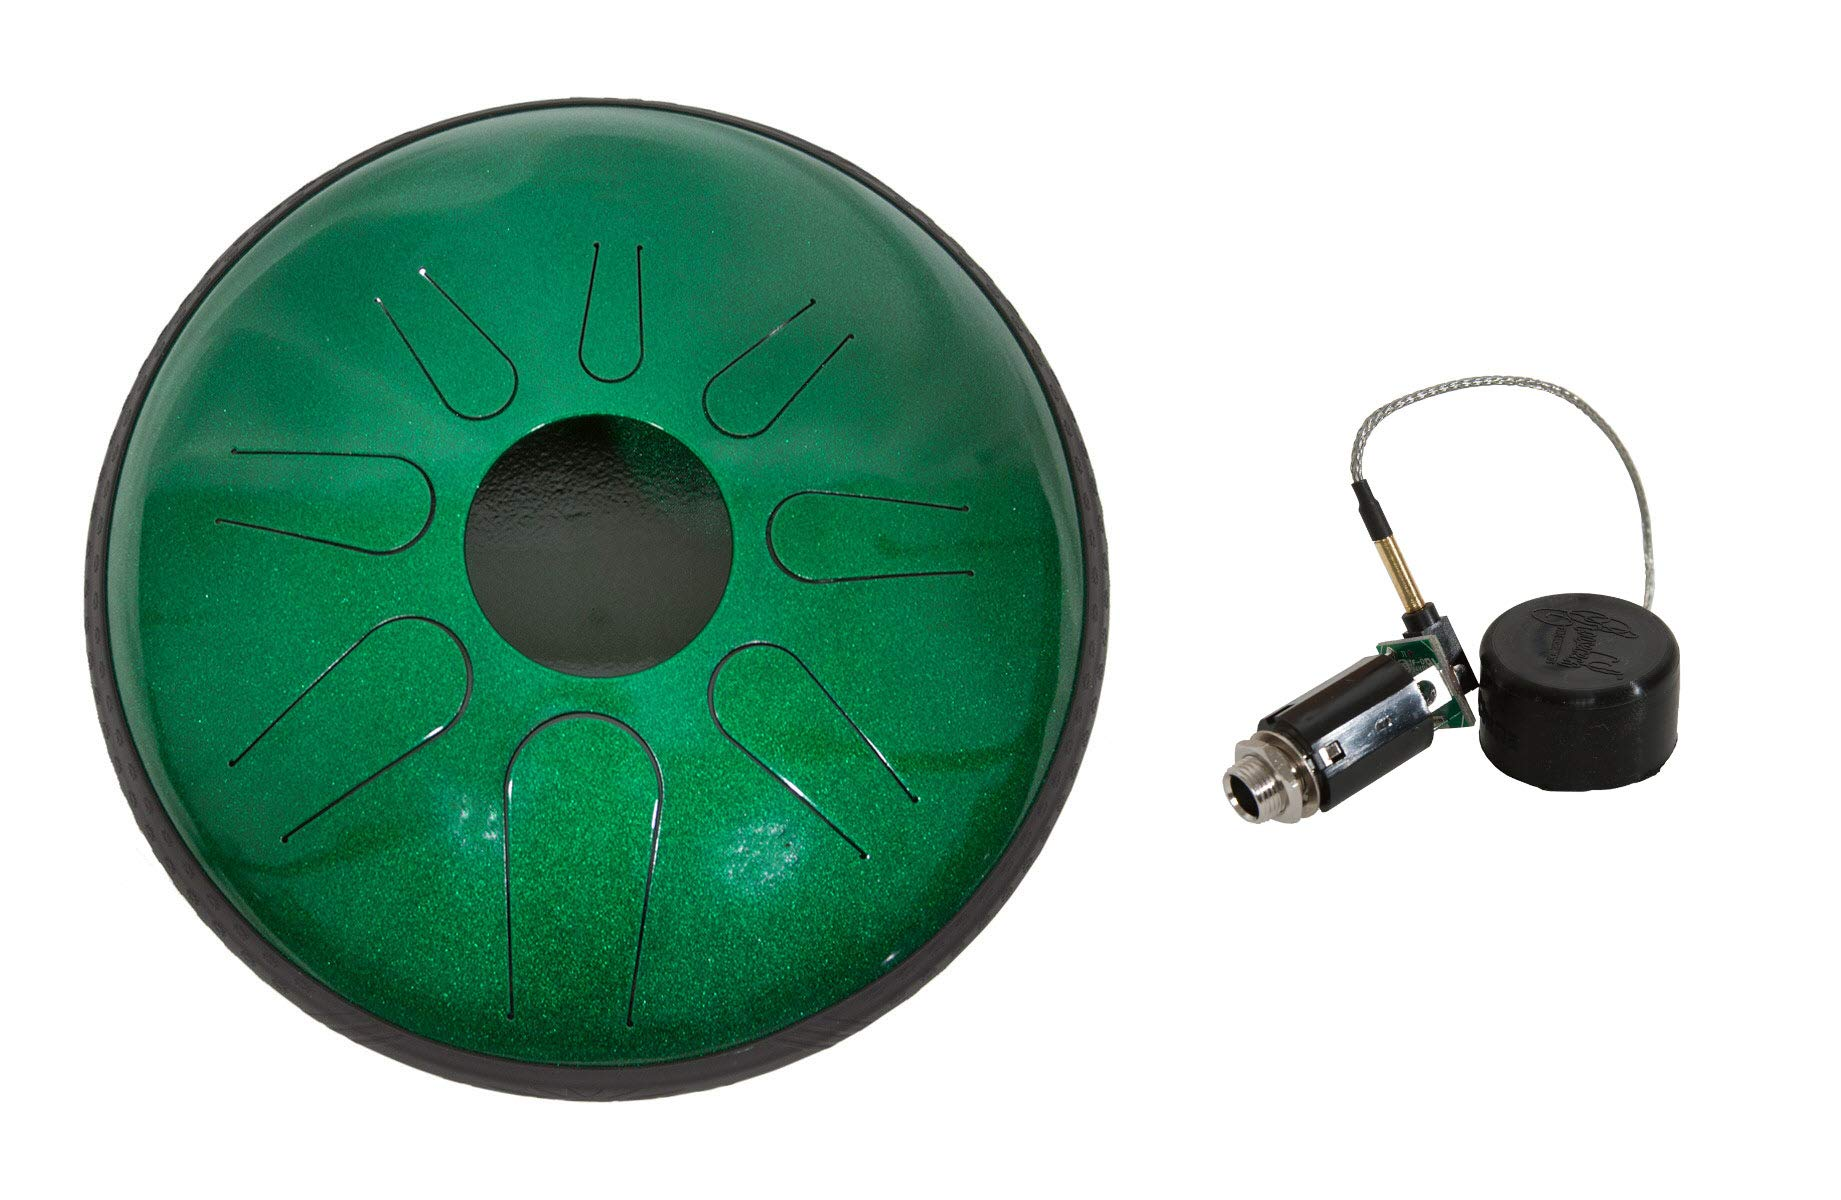 Idiopan Dominus Steel Drum Package Includes: 12'' Tunable Steel Tongue Drum - Emerald Green + Roosebeck Electric Pickup - 150hz